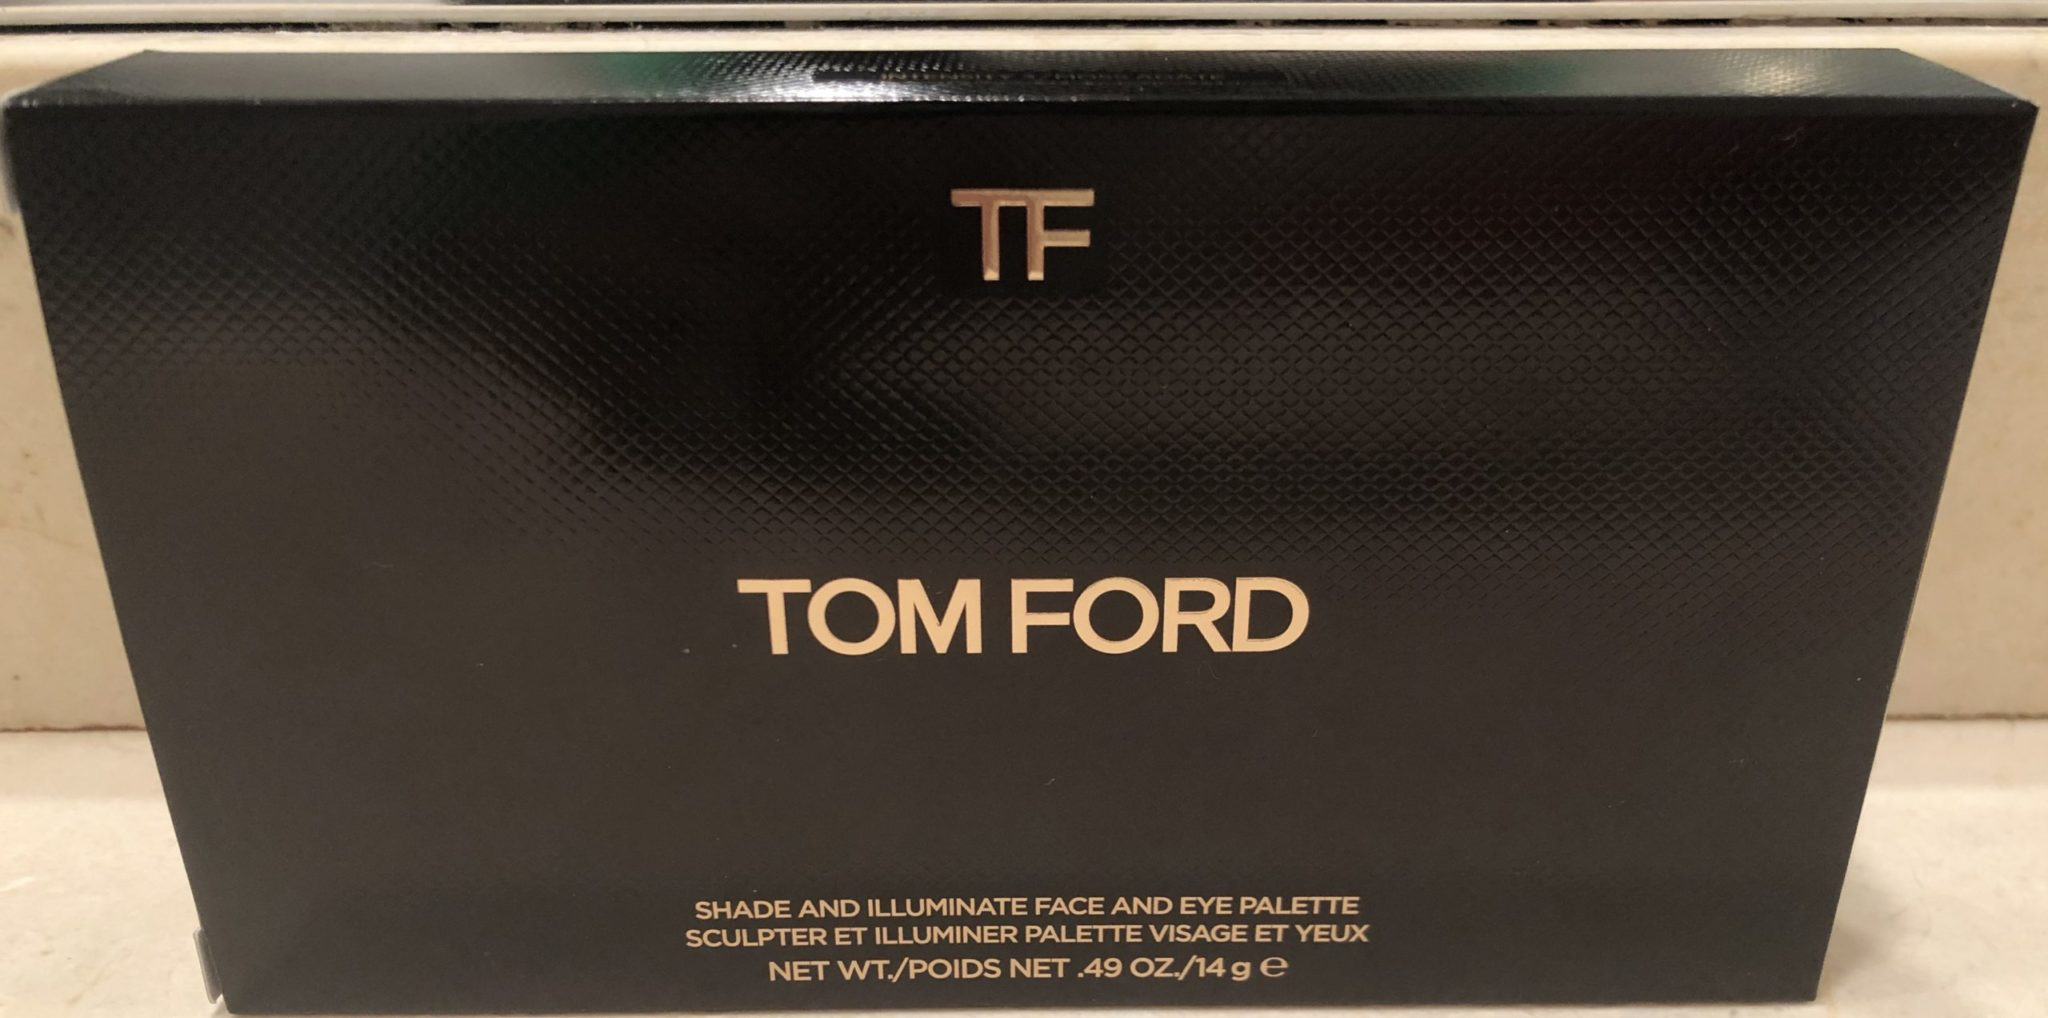 Tom Ford Shade & Illuminate Face & Eye Palette outer boc